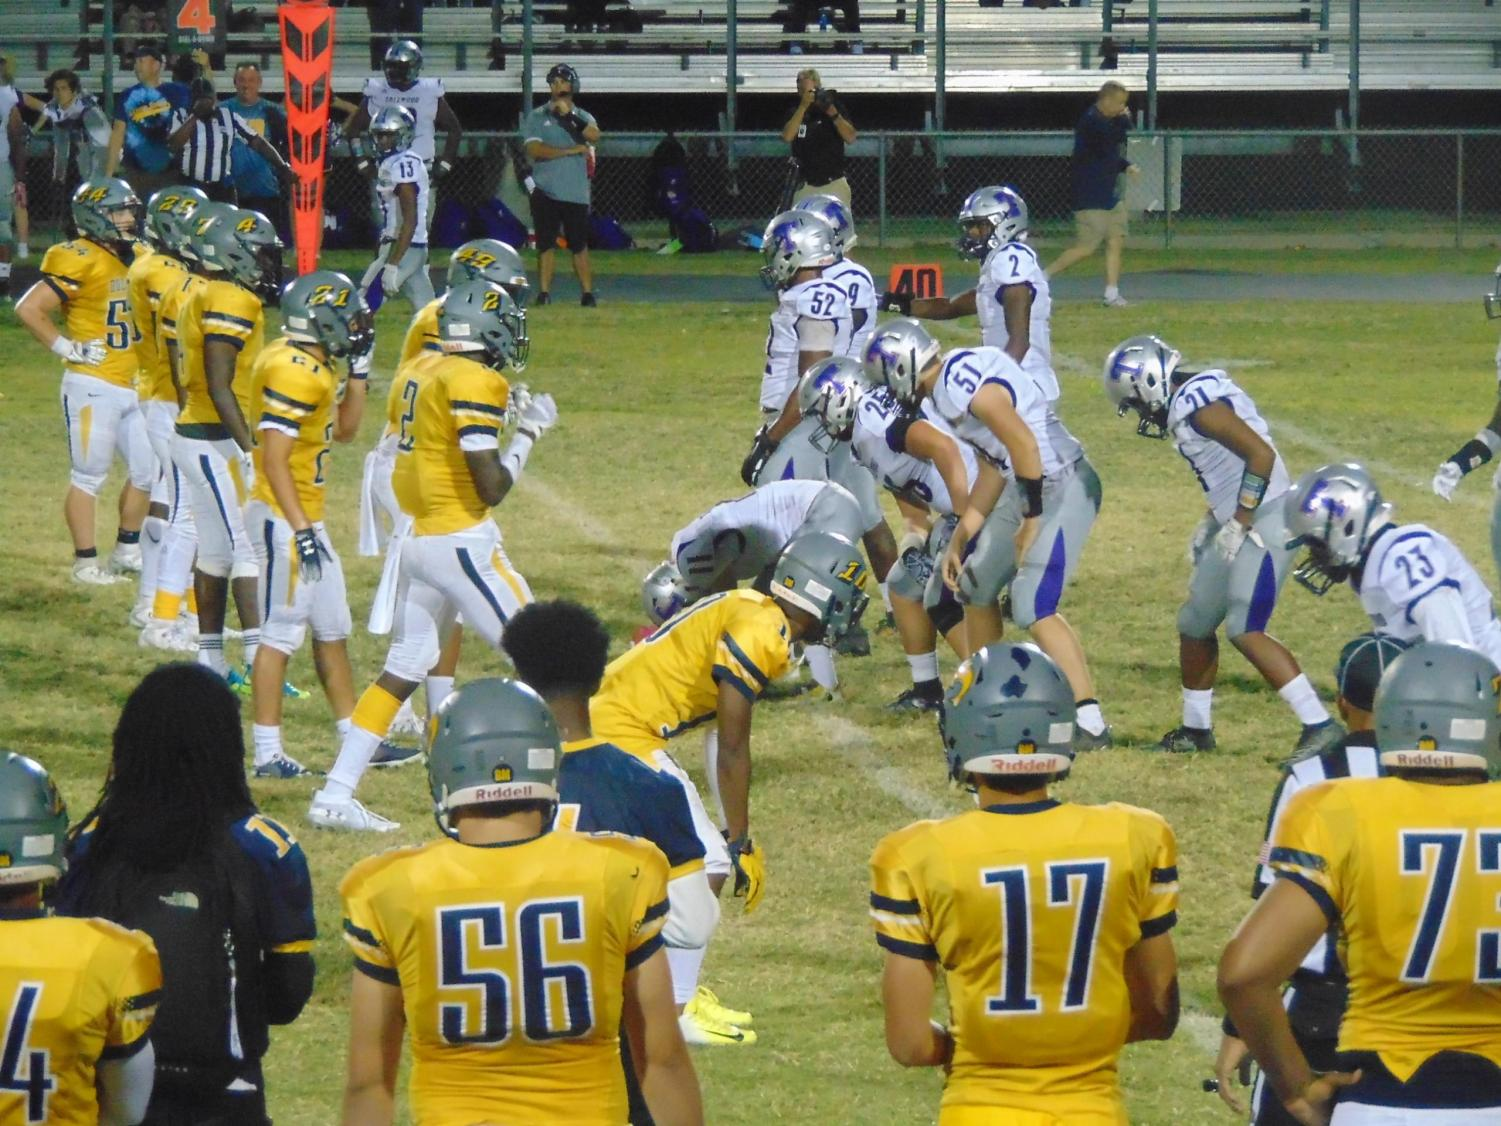 Varsity defense lines up against Tallwood at home on Sept. 27.